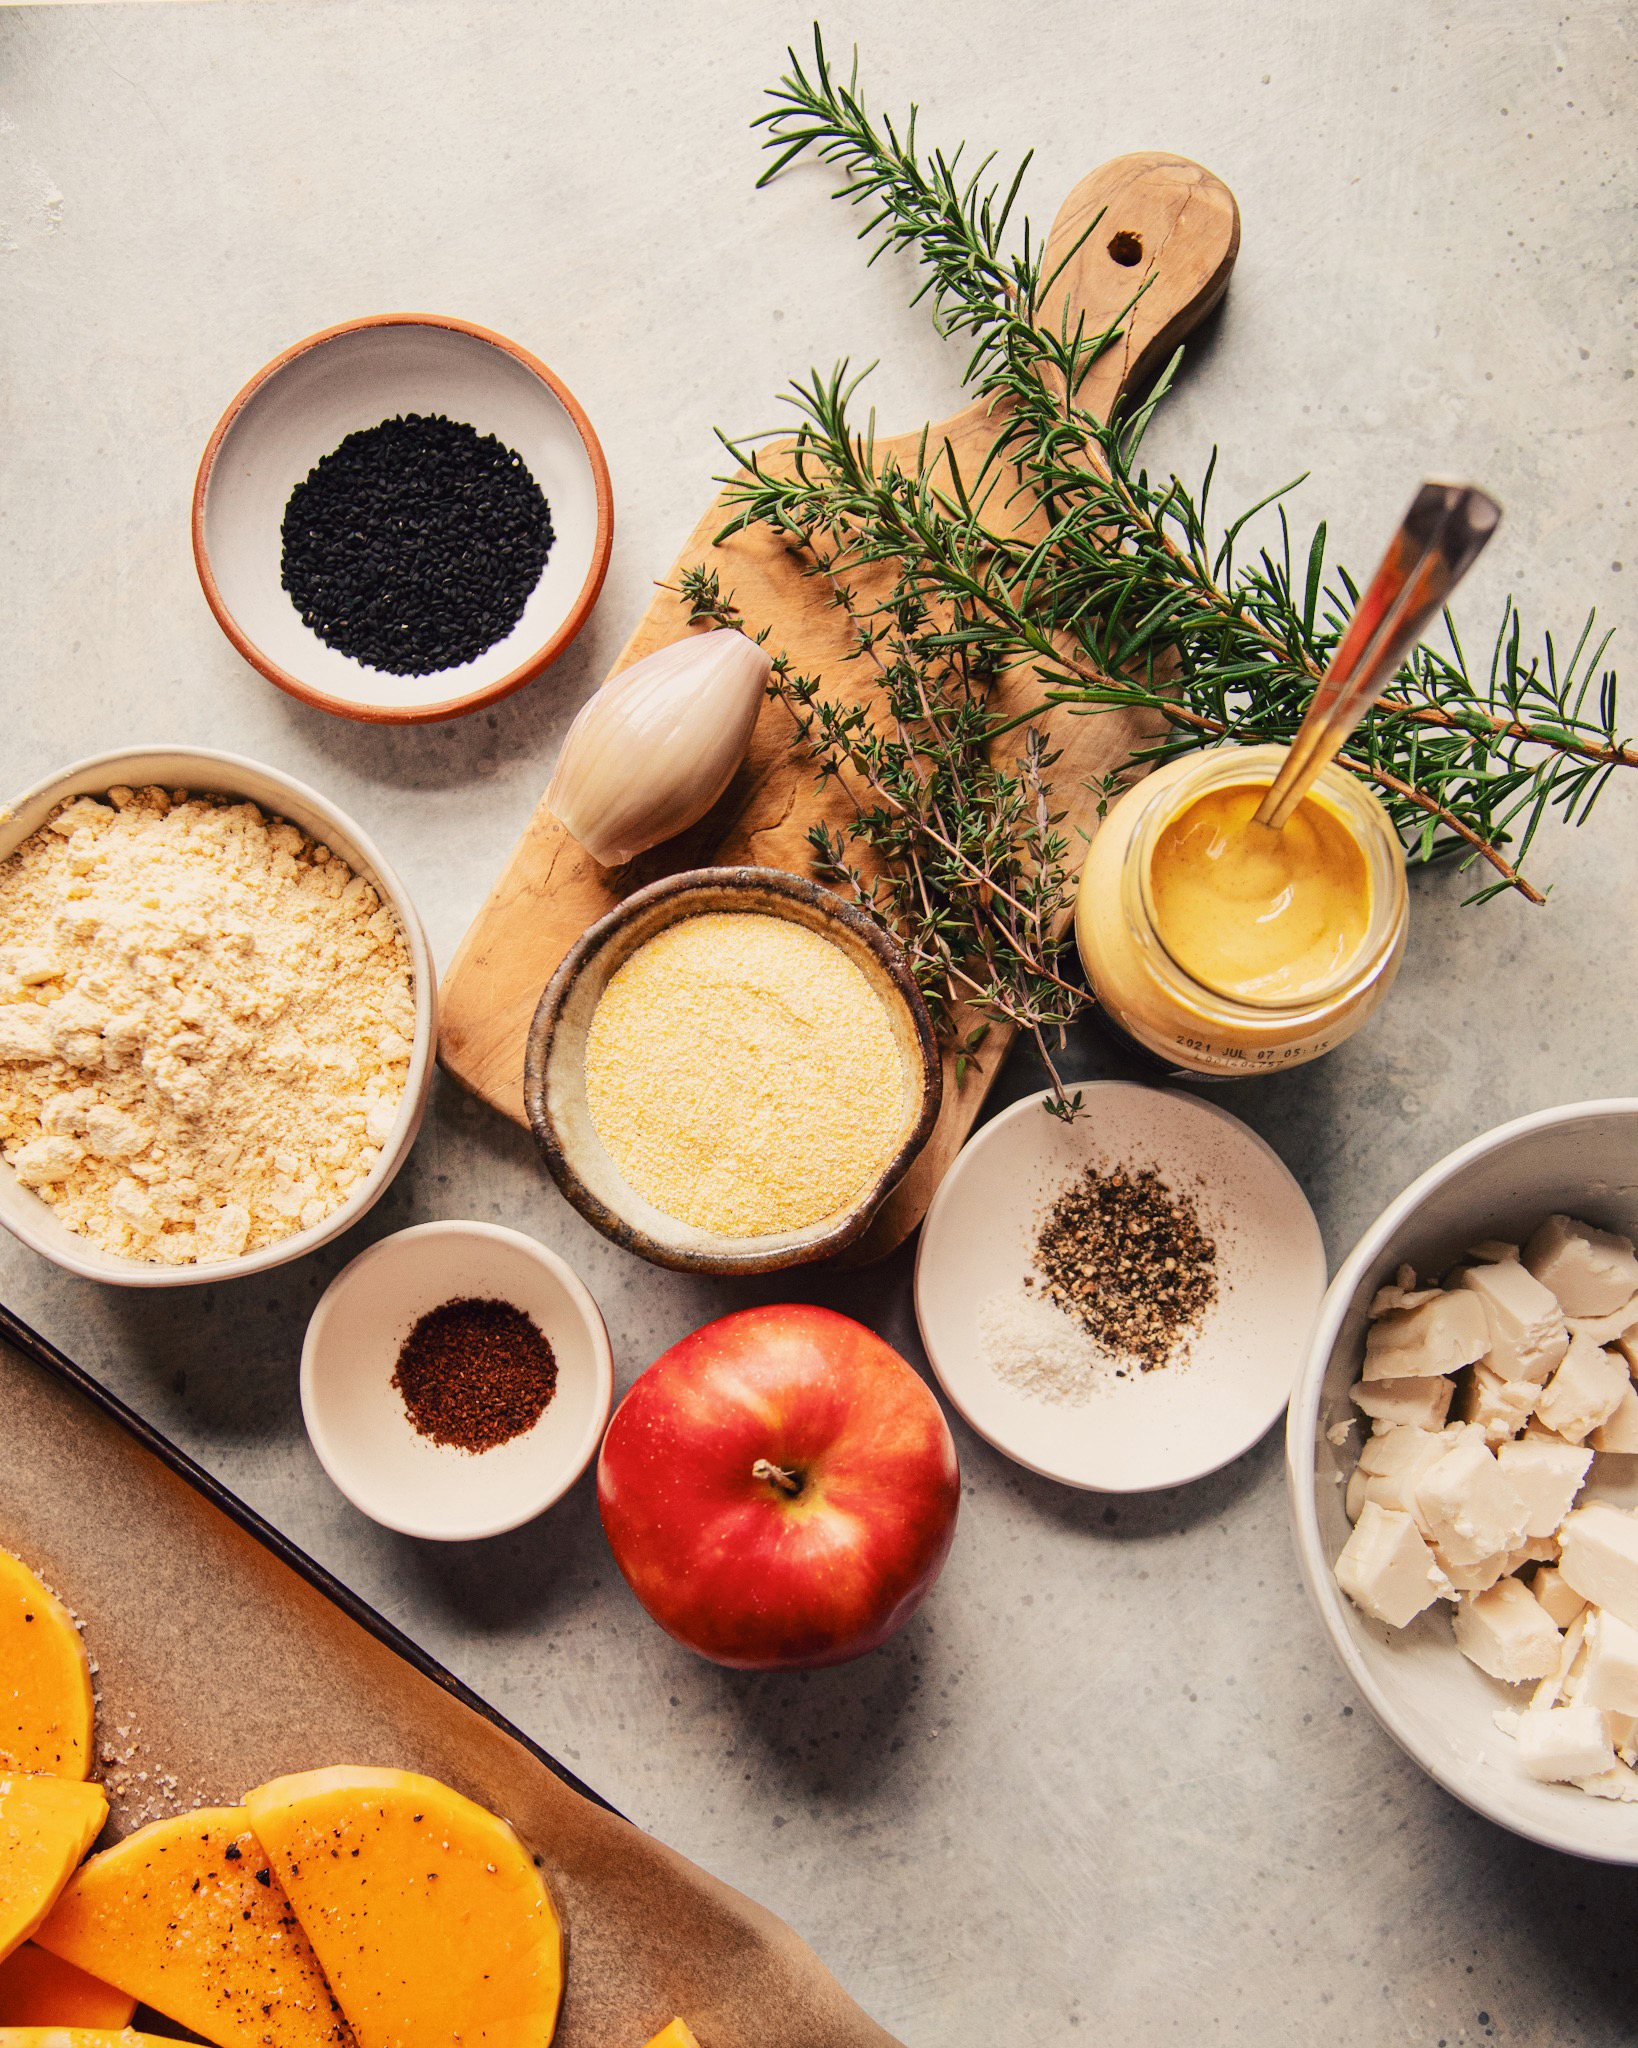 An overhead view of the ingredients including: rosemary, thyme, squash, chickpea flour in a bowl, cornmeal in a bowl, salt, pepper and apple, shallot and a small bowl of black cumin seeds.  All on a gray background.